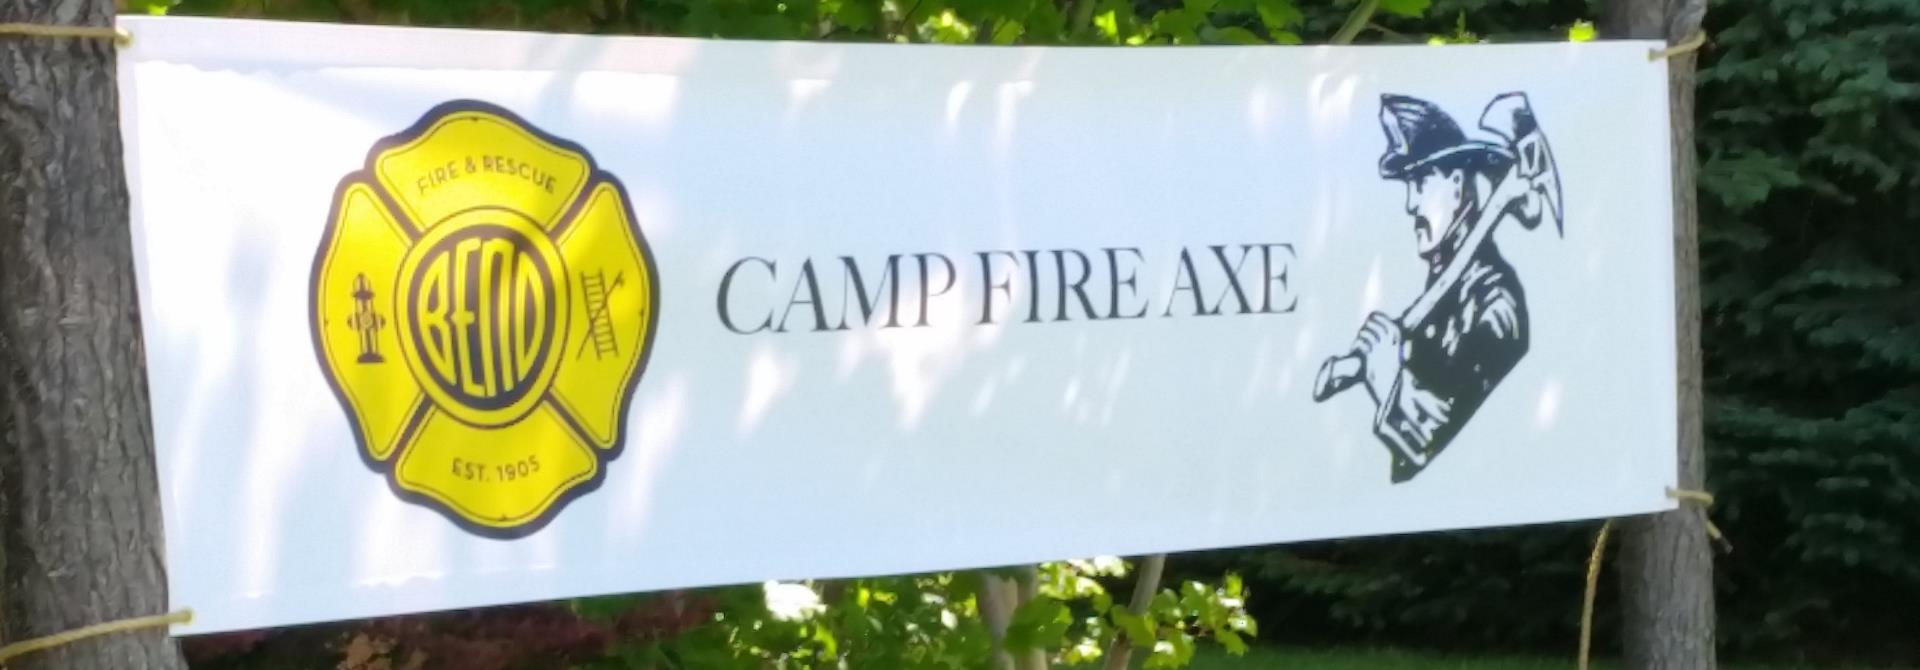 Banner with text Camp Fire Axe; Image of Bend Fire Logo and profile outline of firefighter with helmet and axe